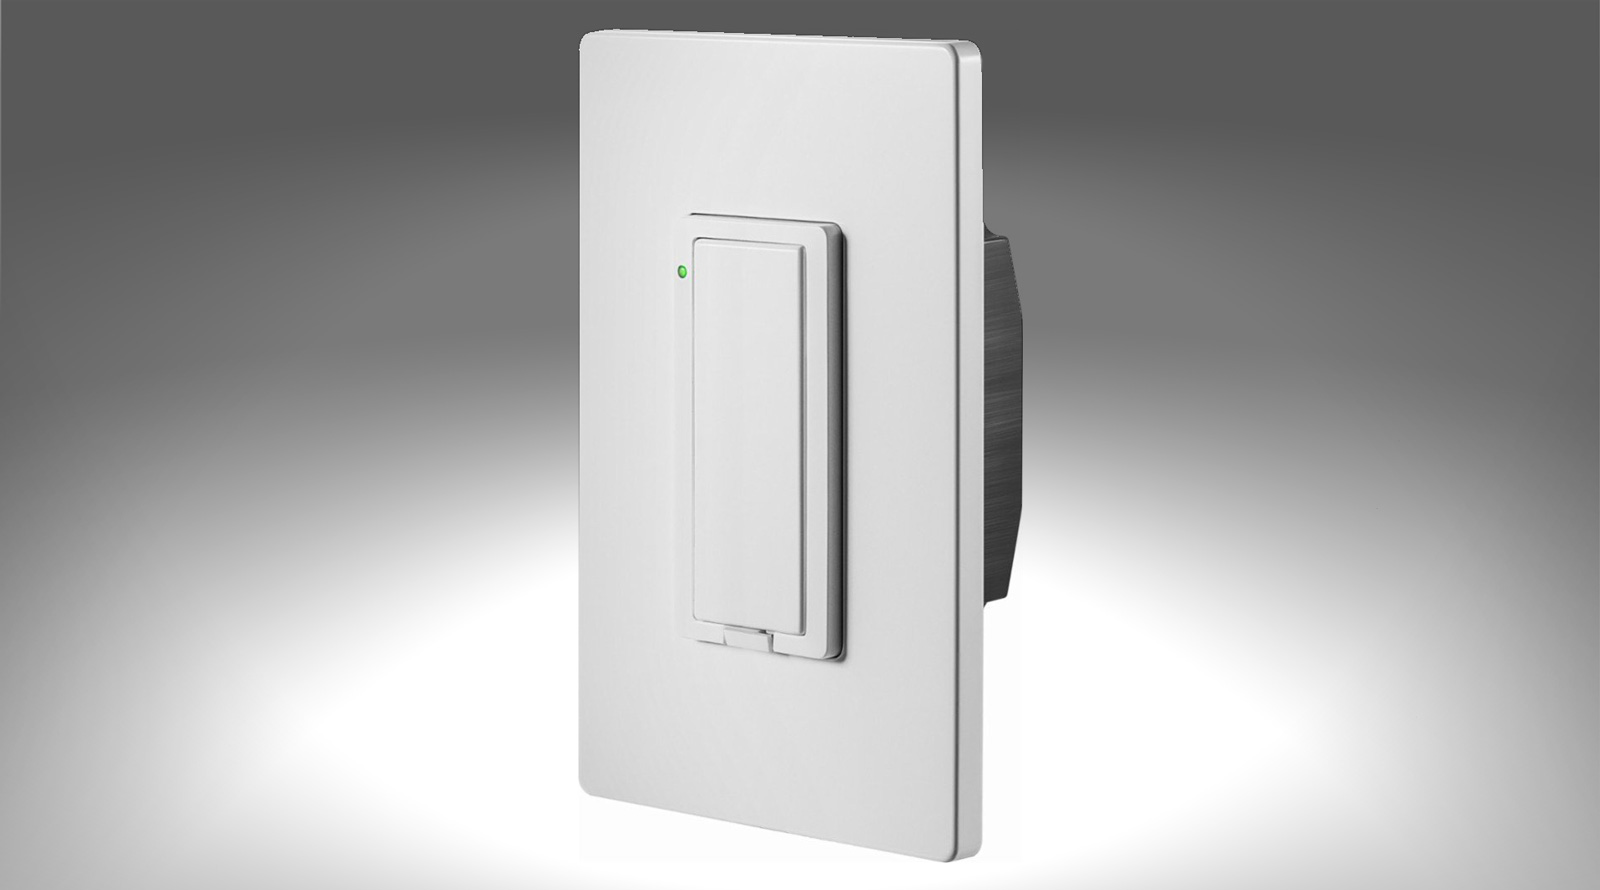 Insignia Smart Light Switch (review) – Homekit News and Reviews